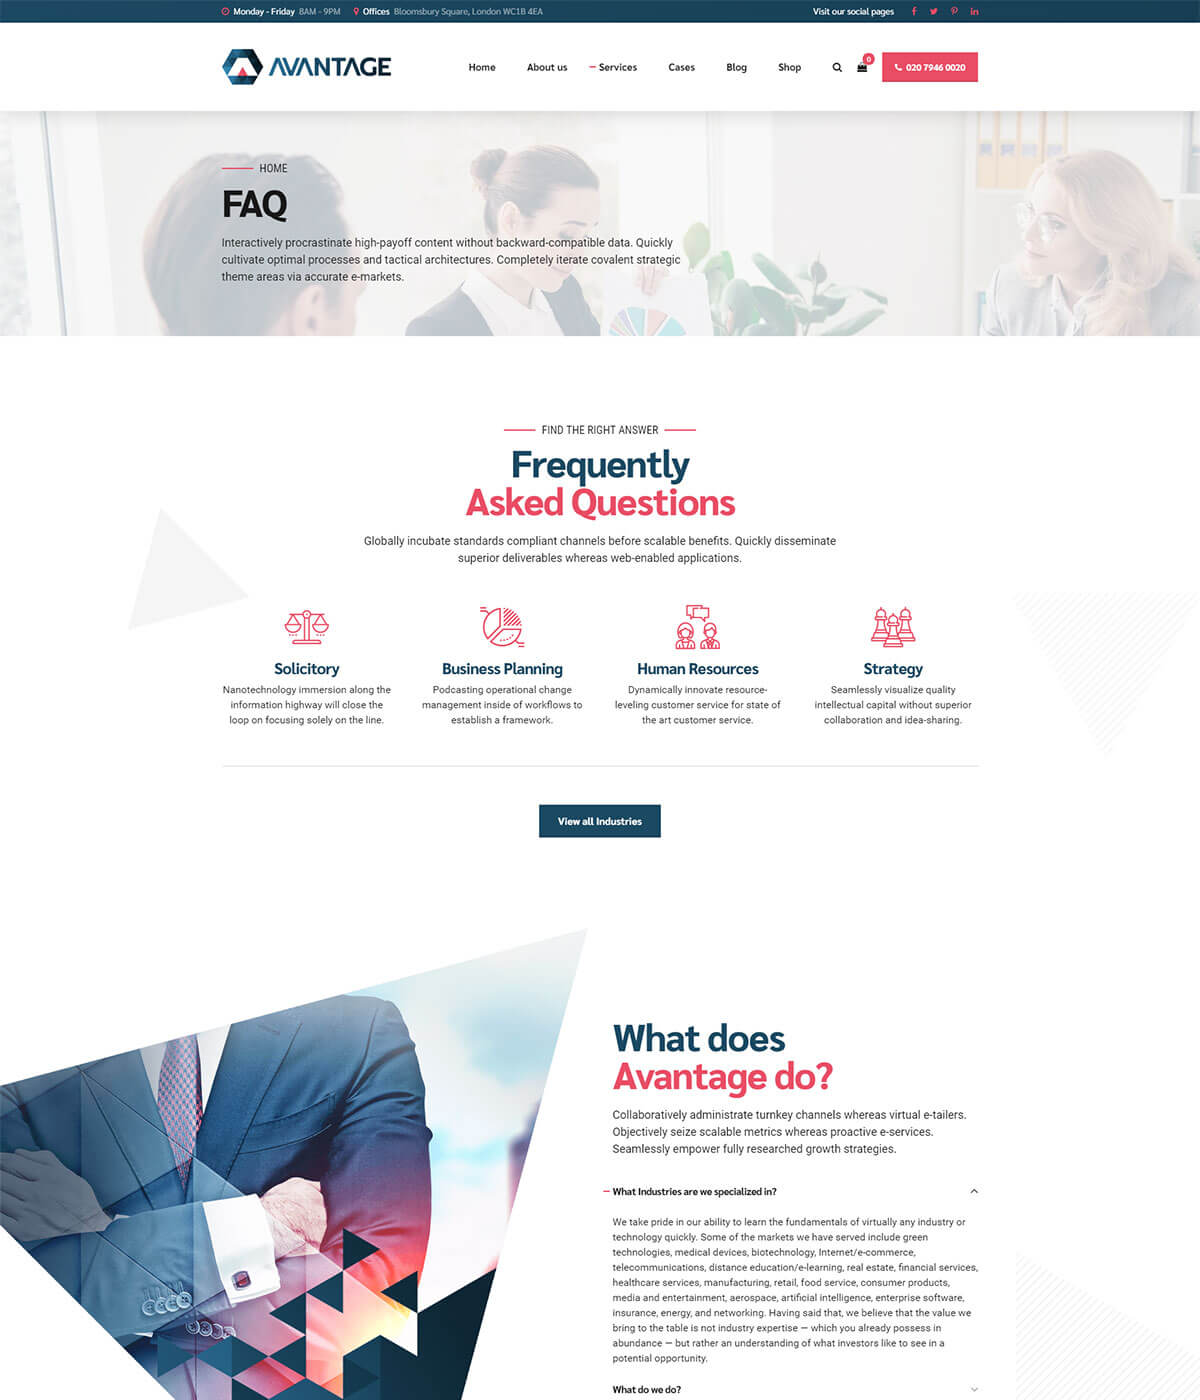 http://avantage.bold-themes.com/wp-content/uploads/2019/05/business-11-faq.jpg